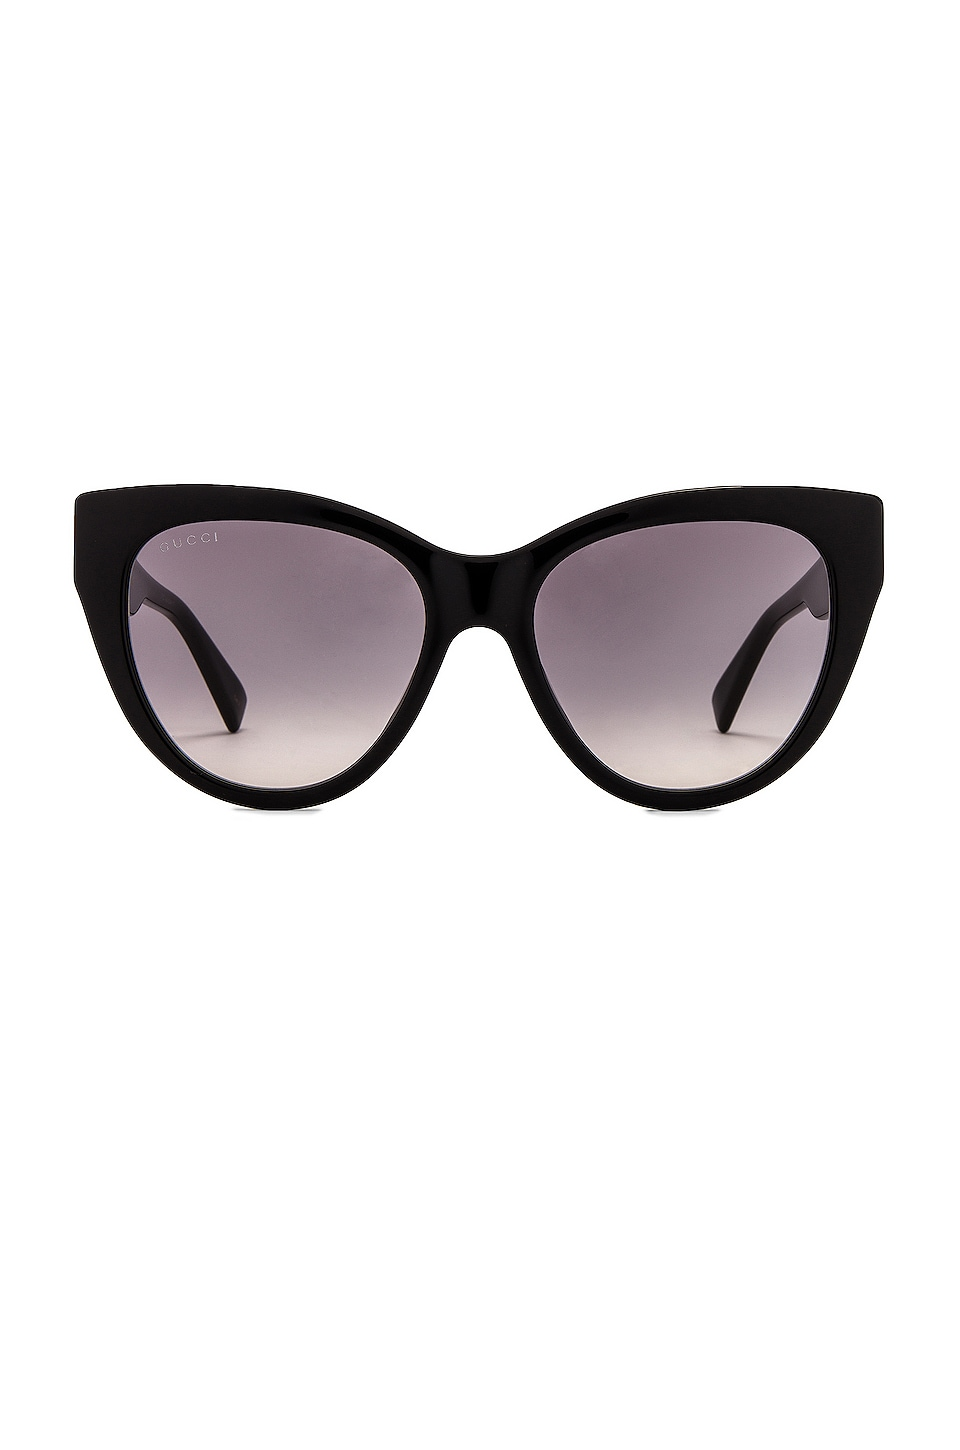 Gucci Web Plaque Sunglasses in Shiny Solid Black & Grey Gradient